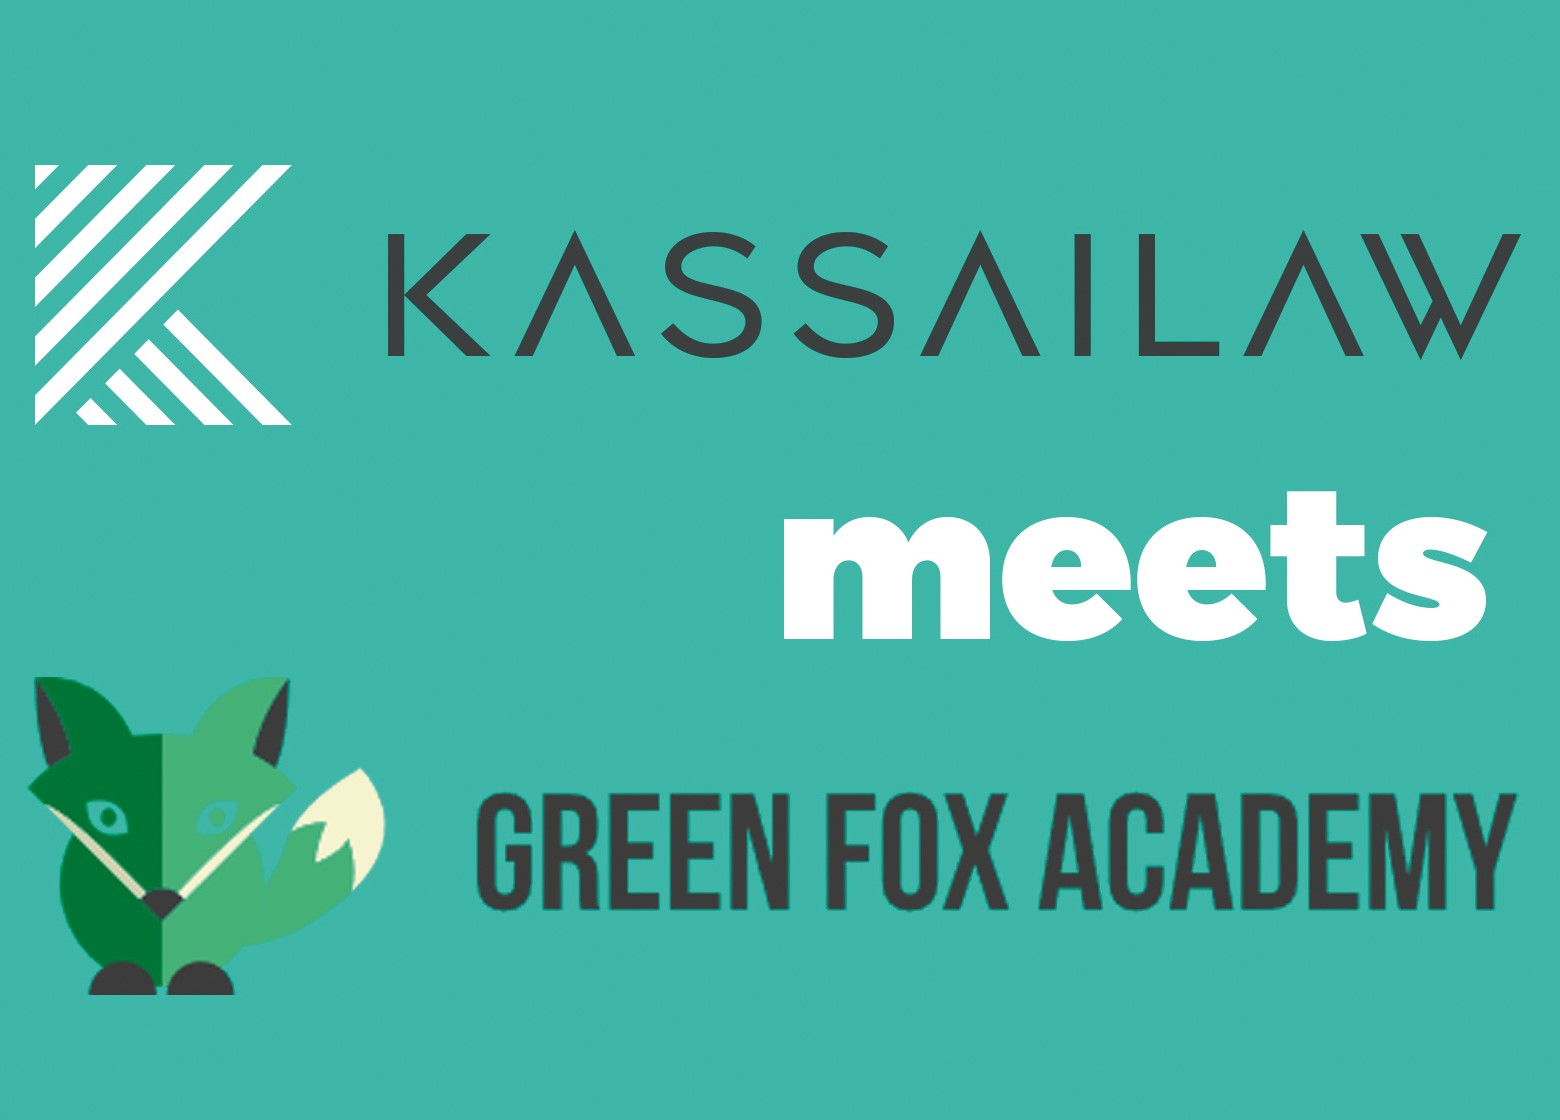 We code with Green Fox